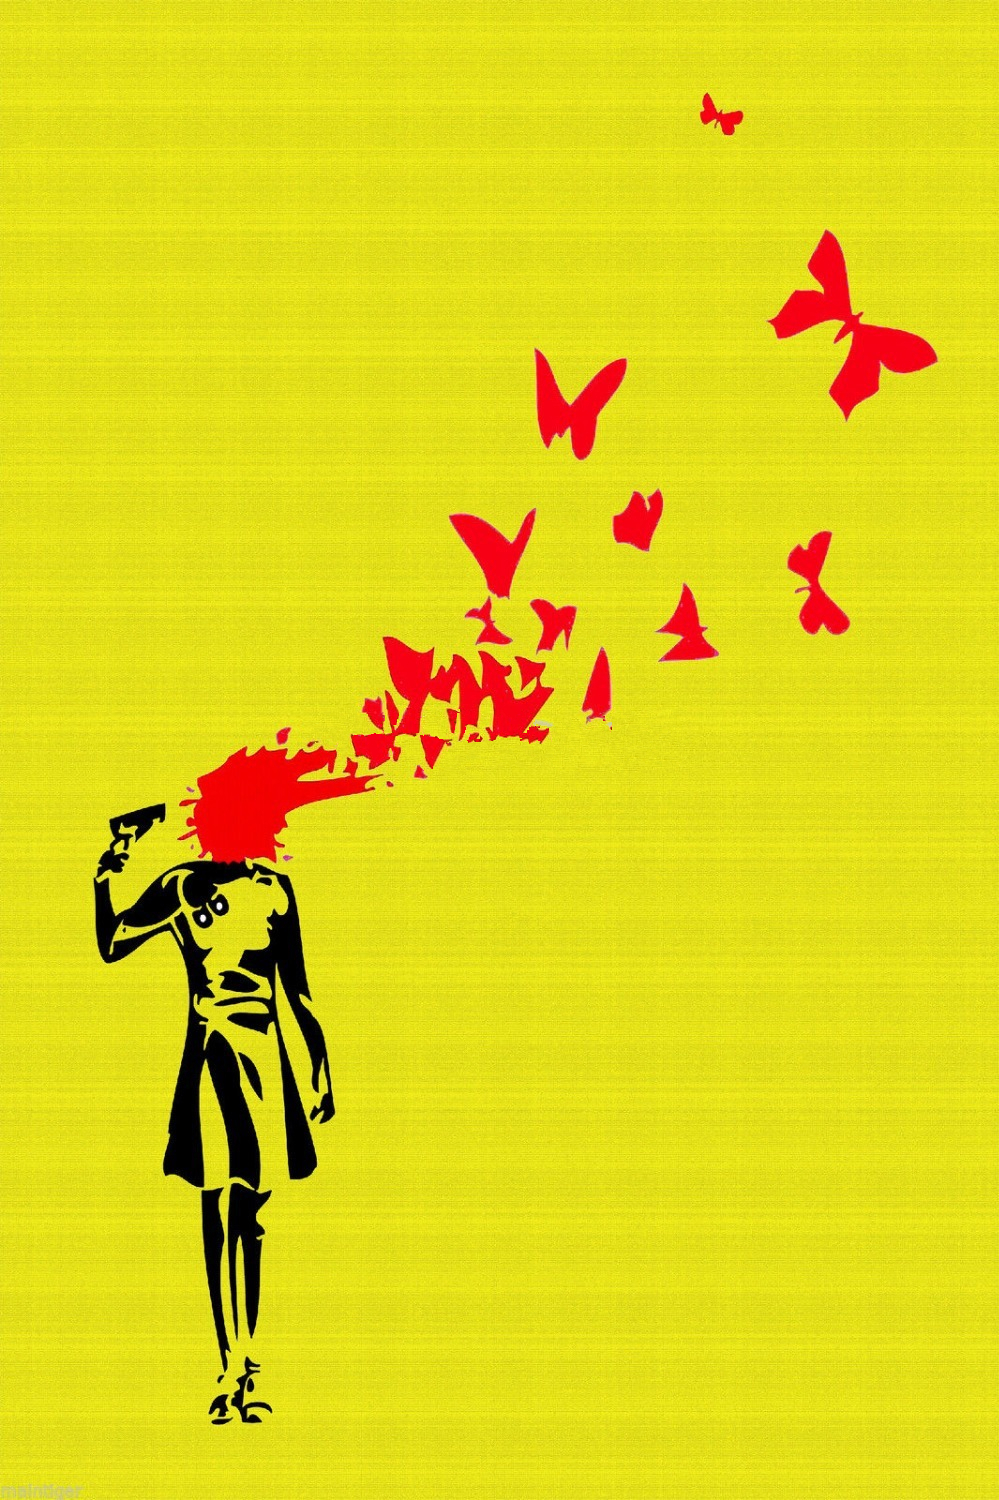 Graffiti Suicide Butterfly Gold London BANKSY huge canvas painting ...